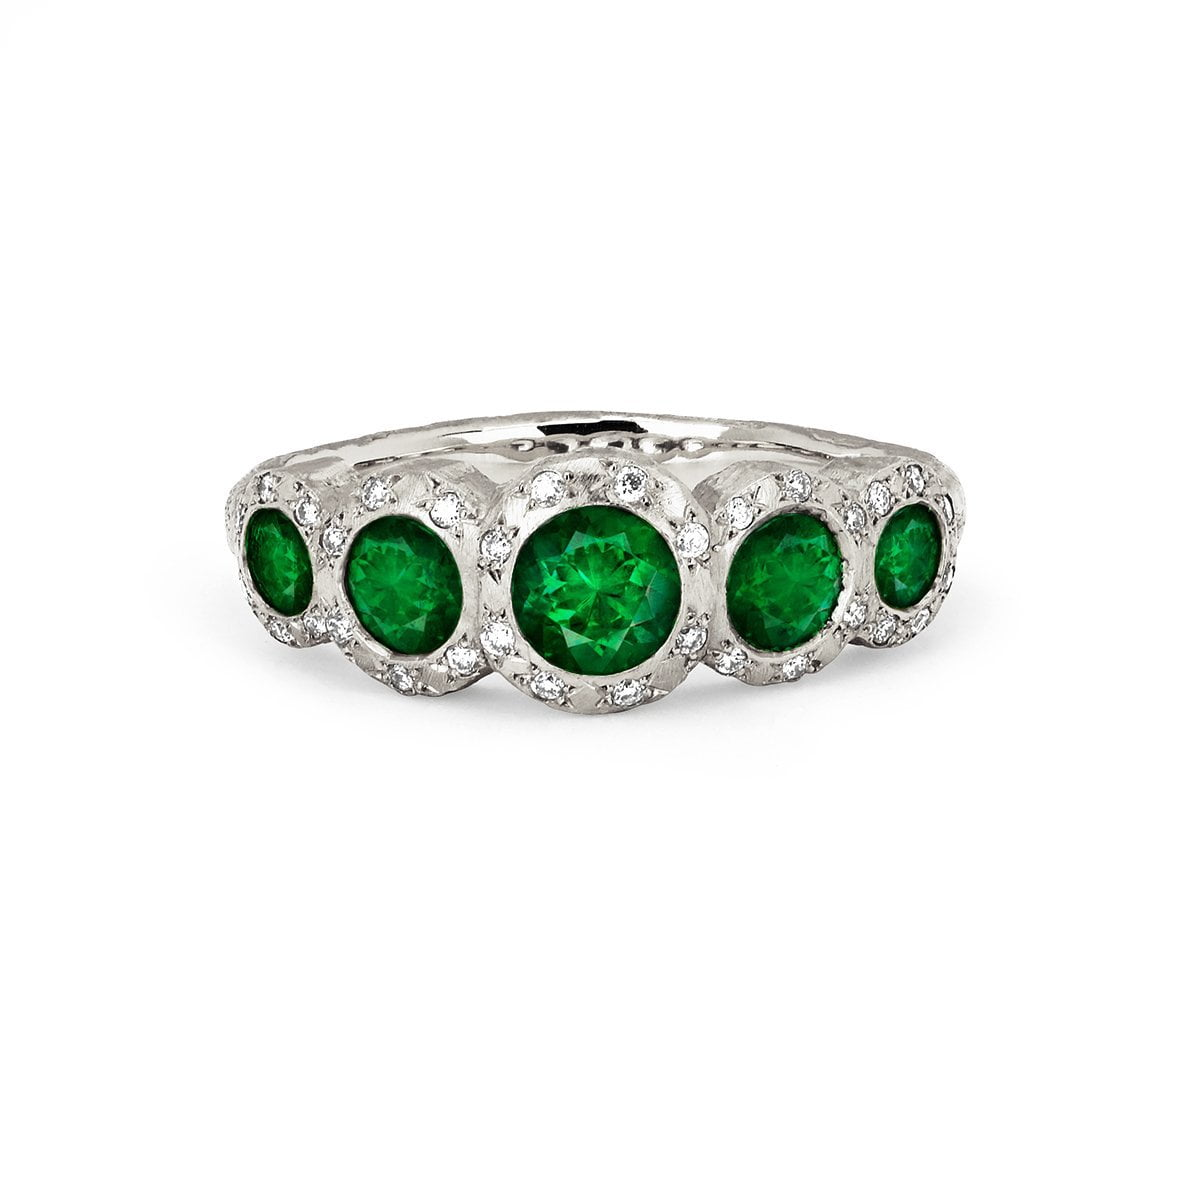 Queen 5 Emerald Band with Sprinkled Diamonds